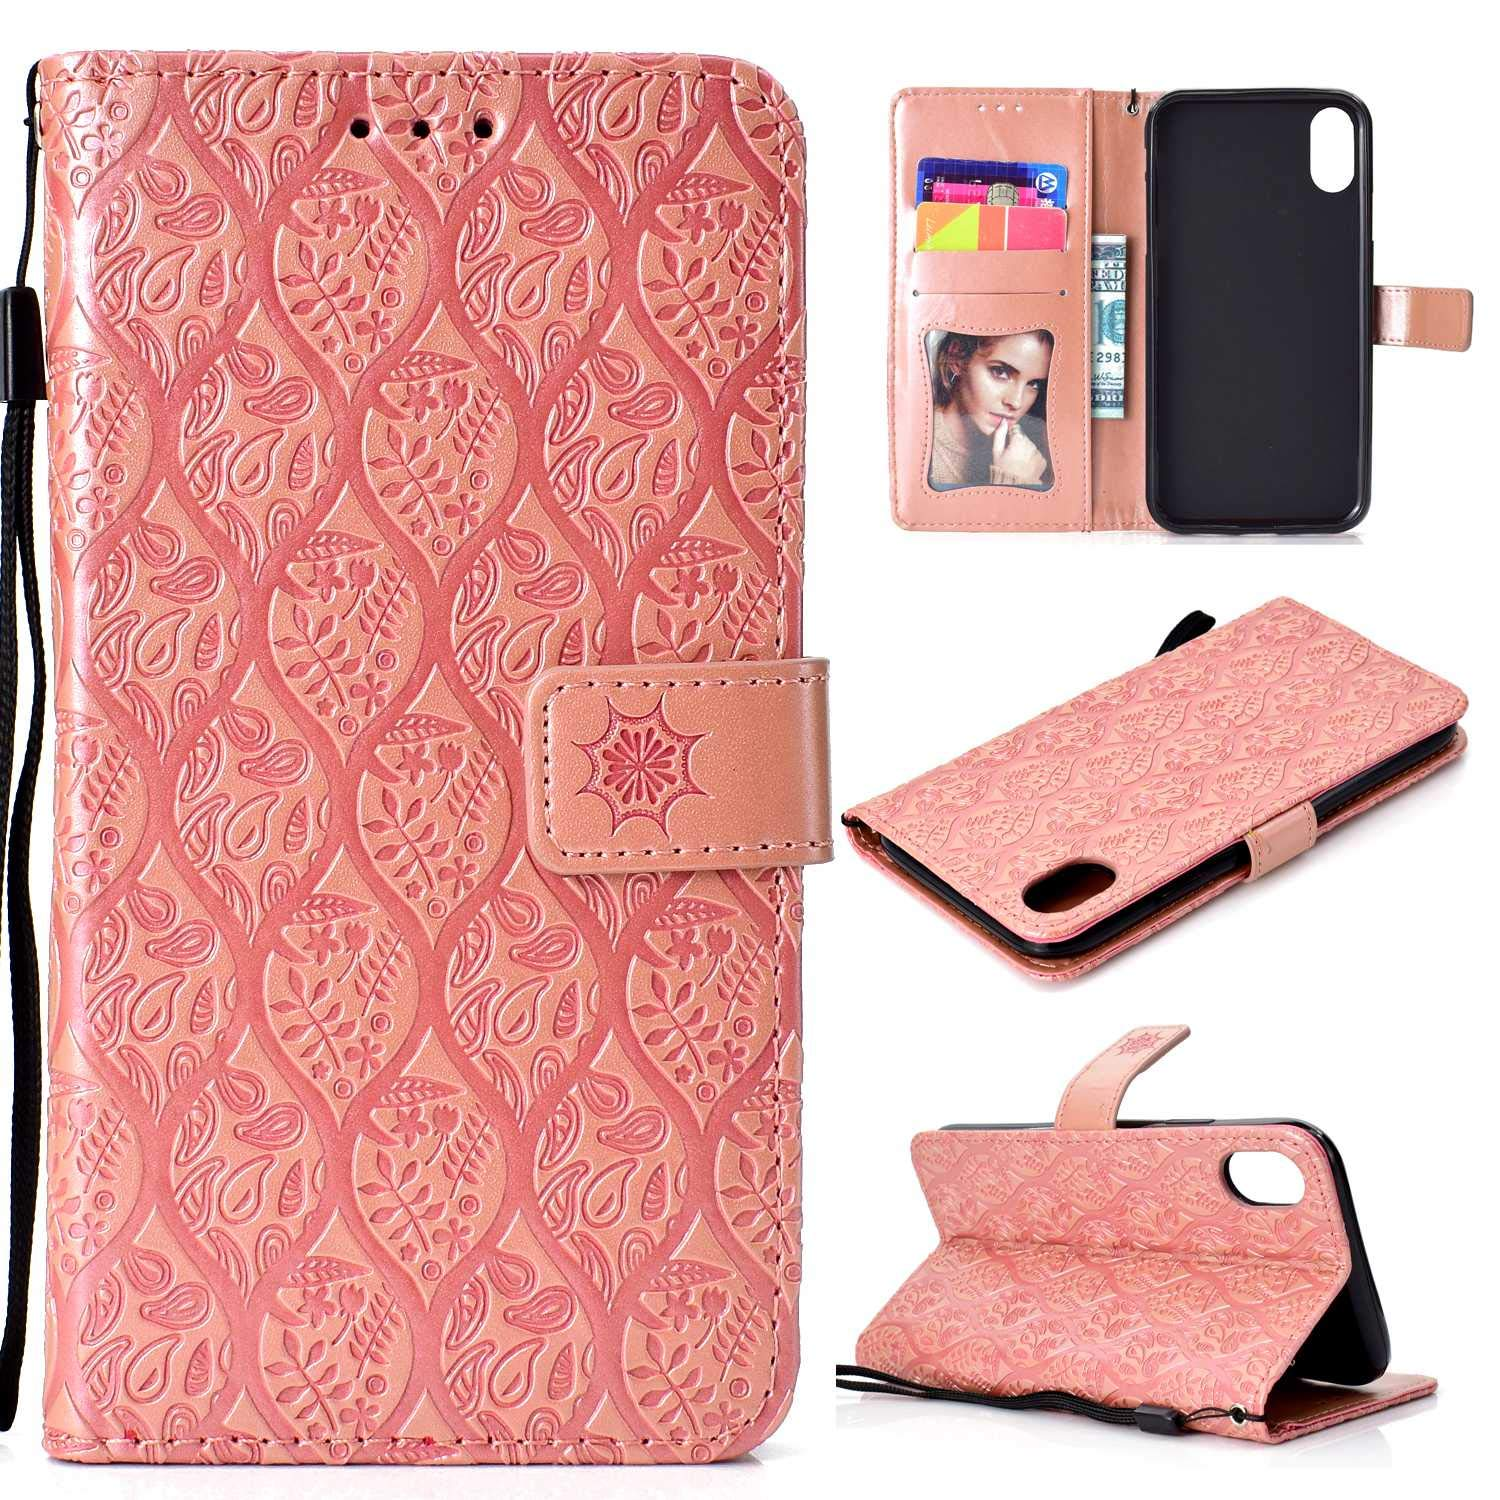 iPhone XR Case, Thrion Premium Leather Flip Case with Stand Cover Advanced PU-Leather Case - Pink